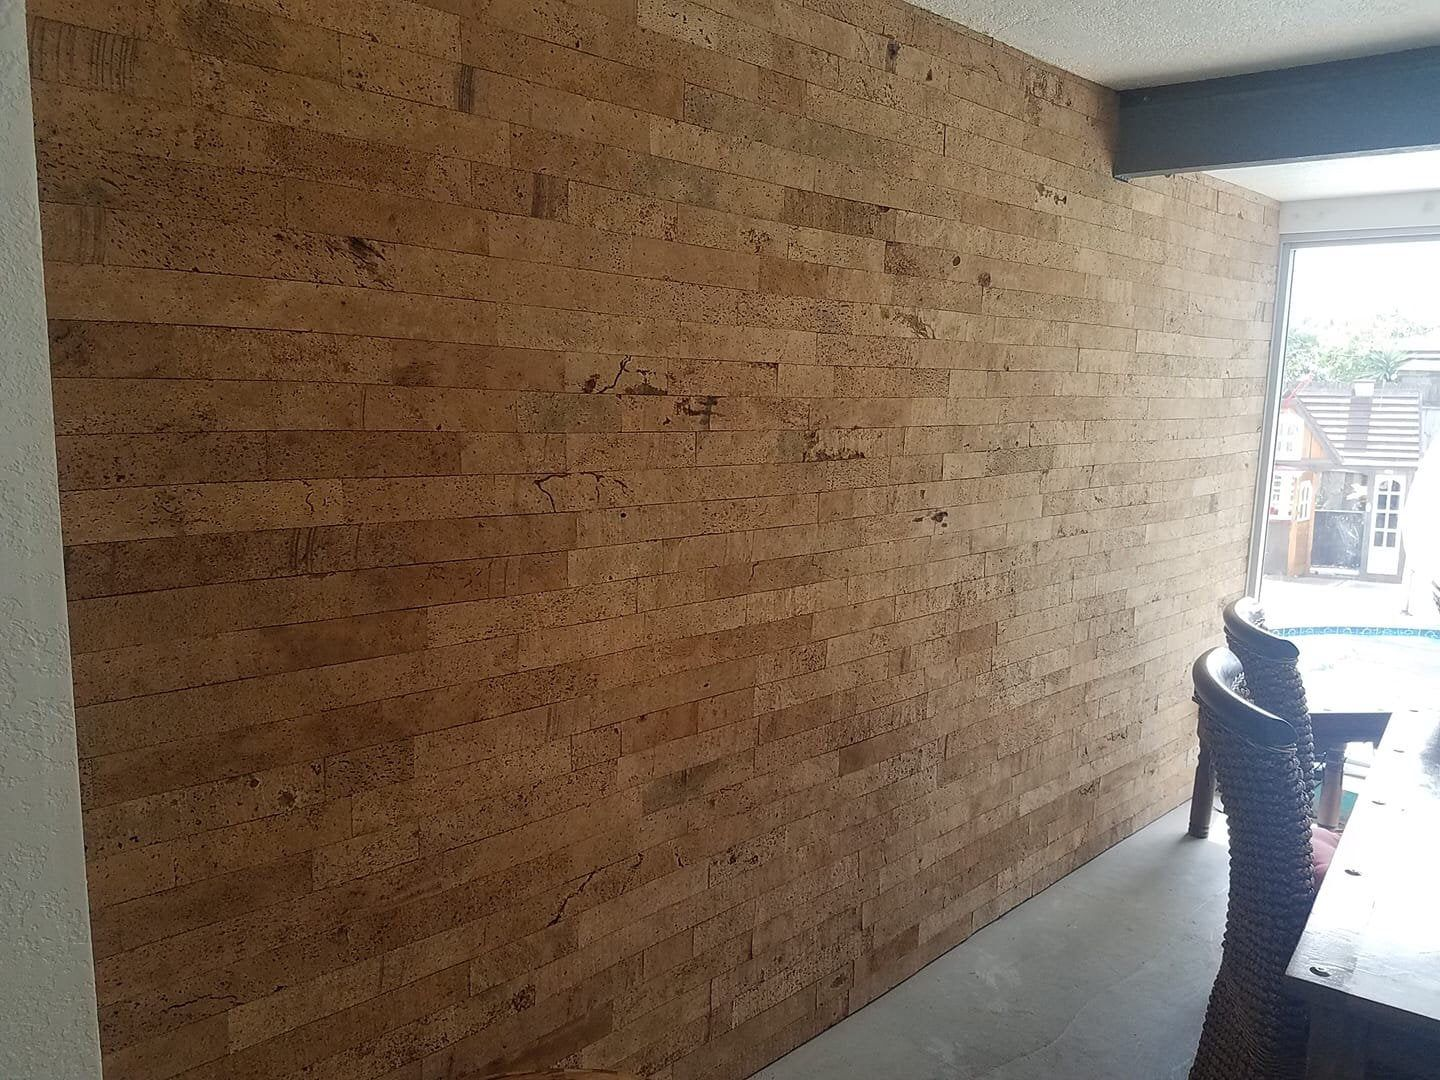 Cork Brick Wall Tile For Feature Walls Bath Living Room Etsy In 2020 Feature Wall Wall Tiles Feature Wall Living Room